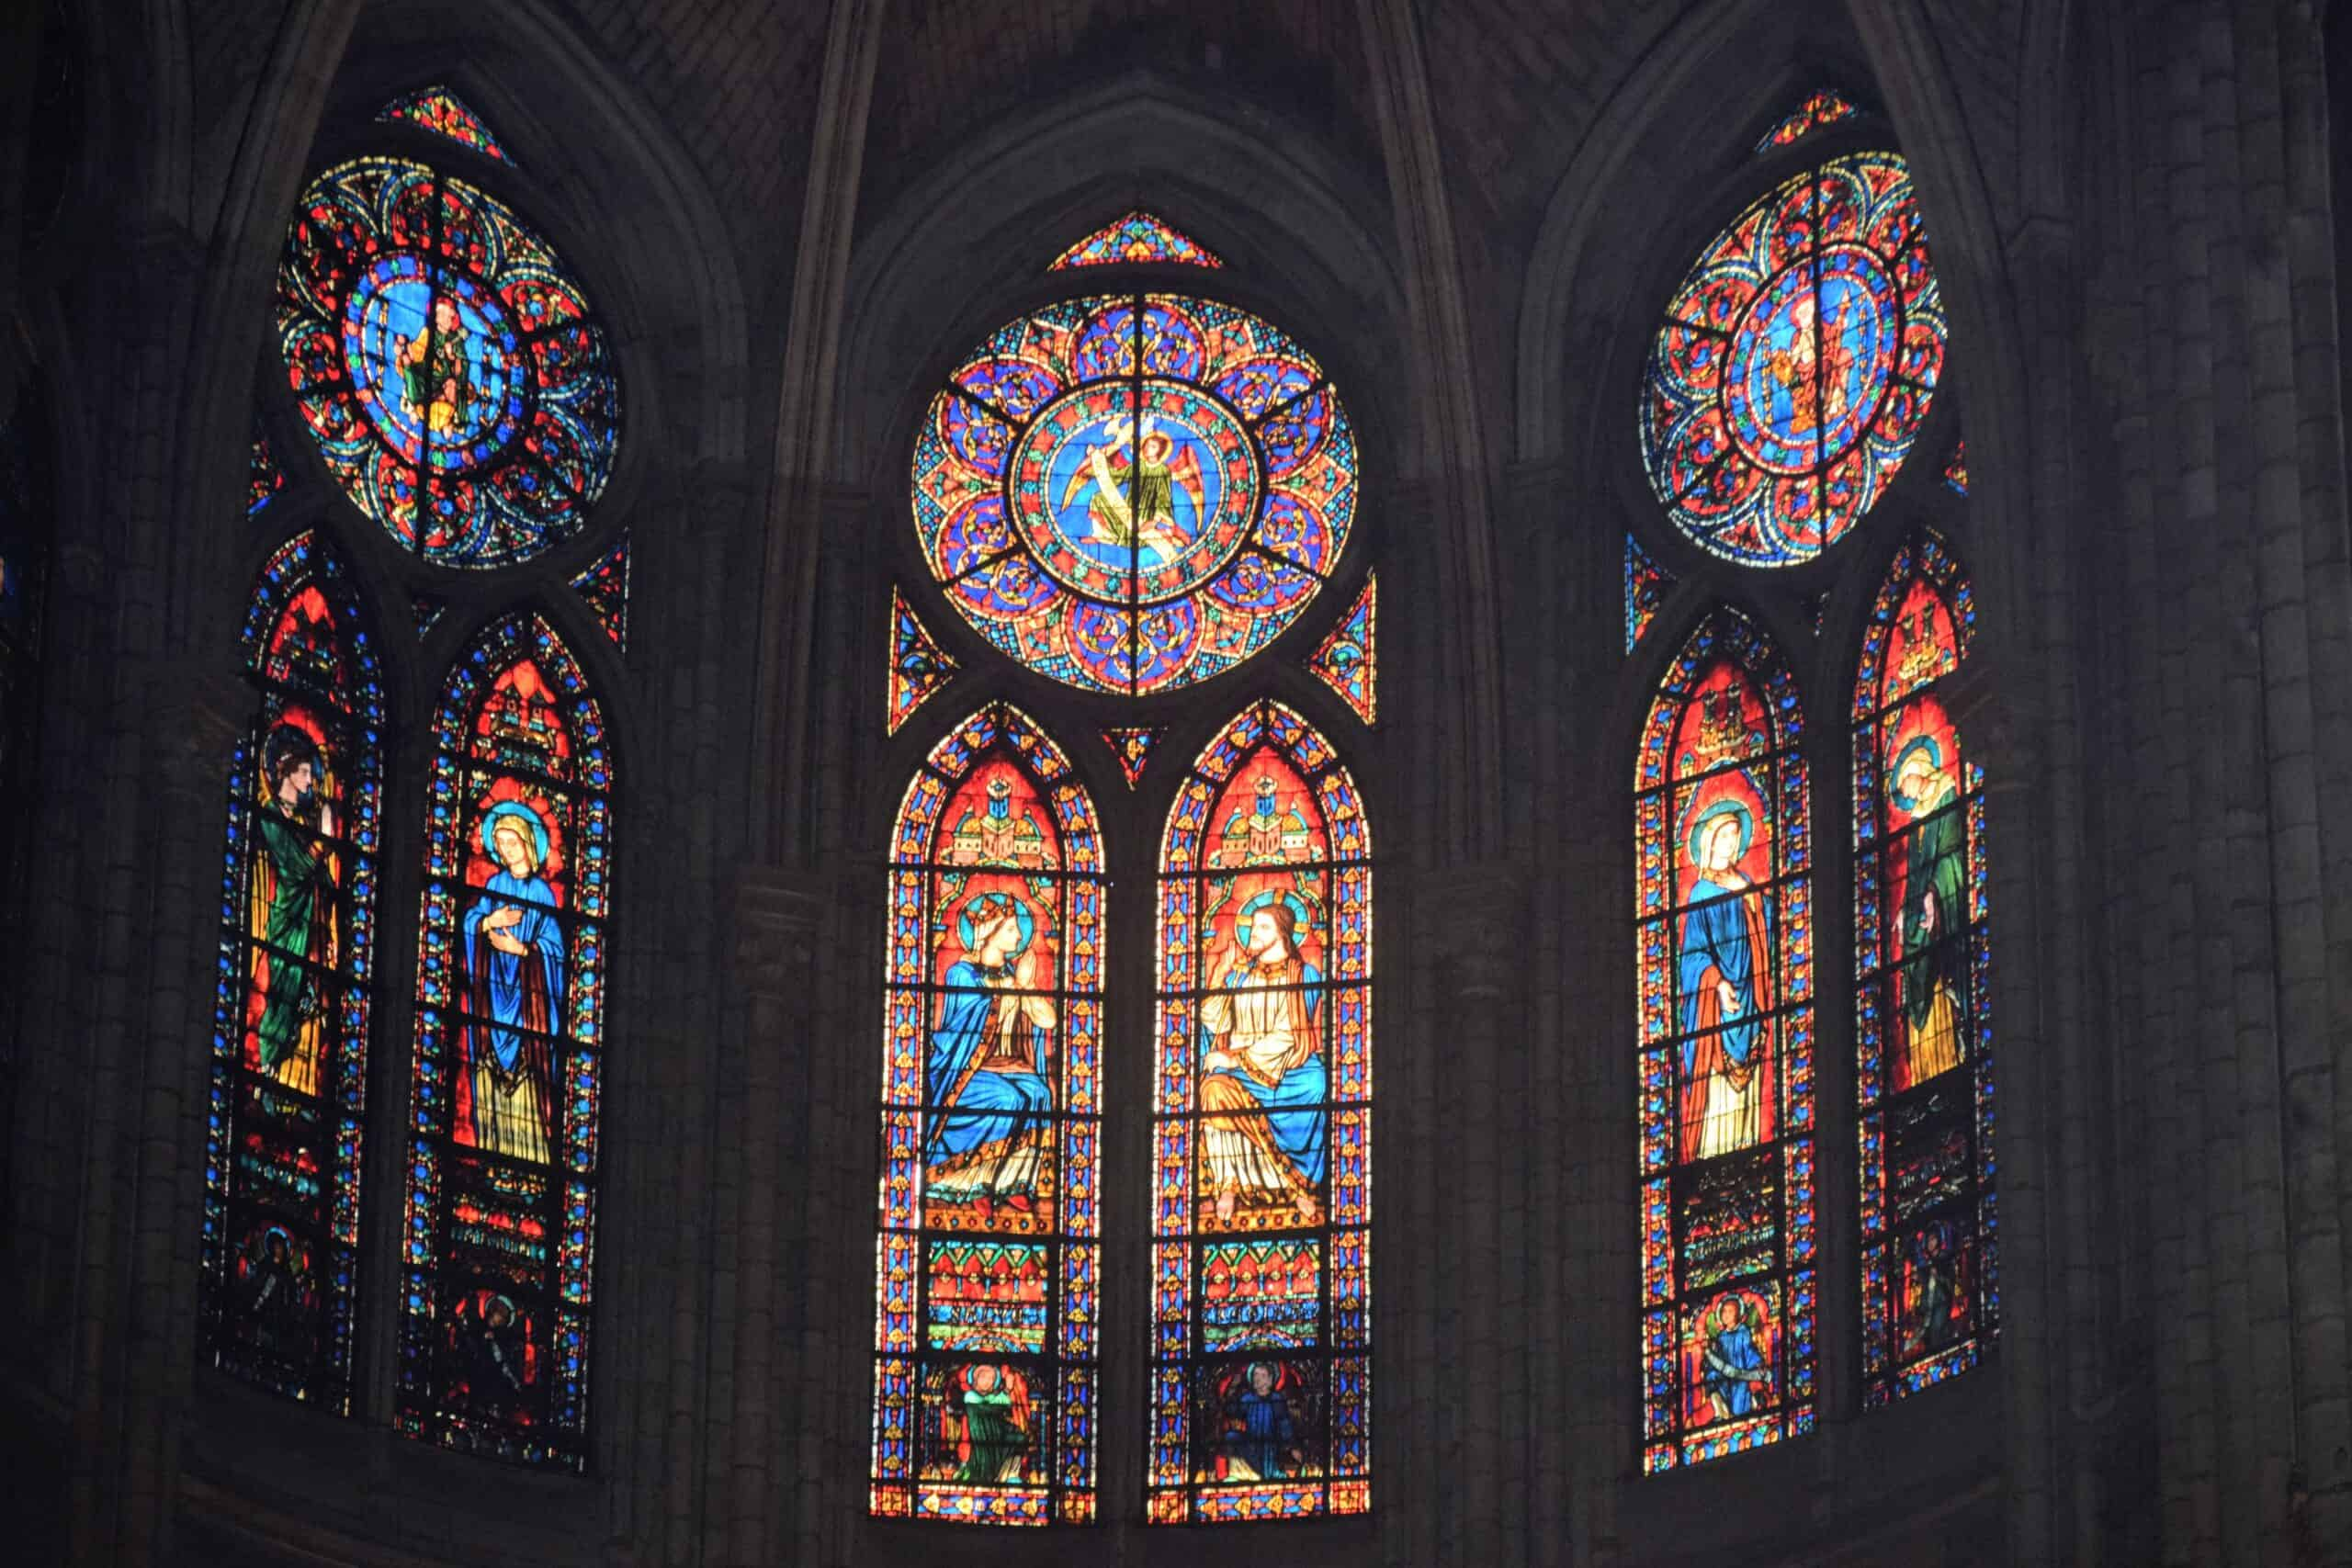 Stained glass windows in the Notre Dame Cathedral - Free audio walking tour of Paris